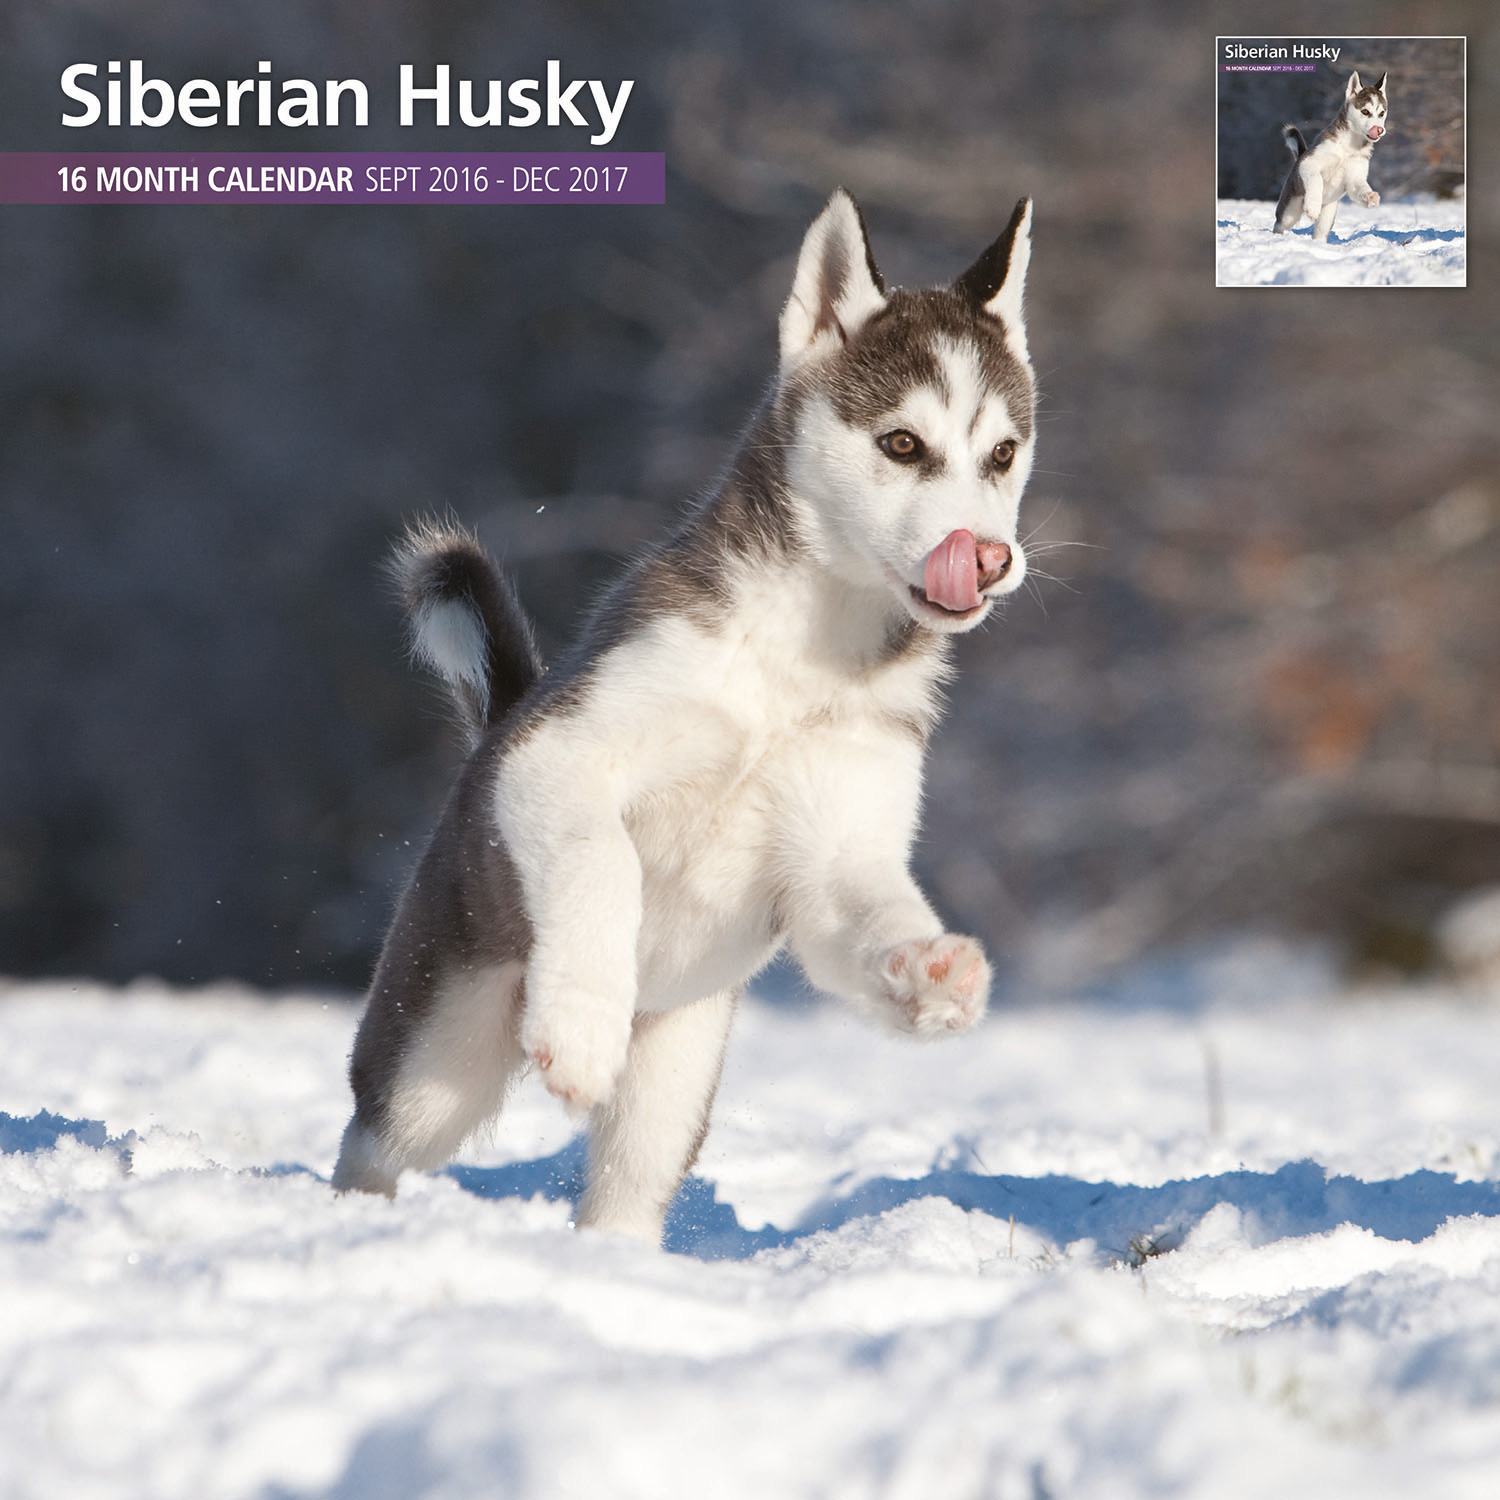 Siberian Husky - 2017 16 Month Traditional Calendar • £9.99 1 of 3 ...